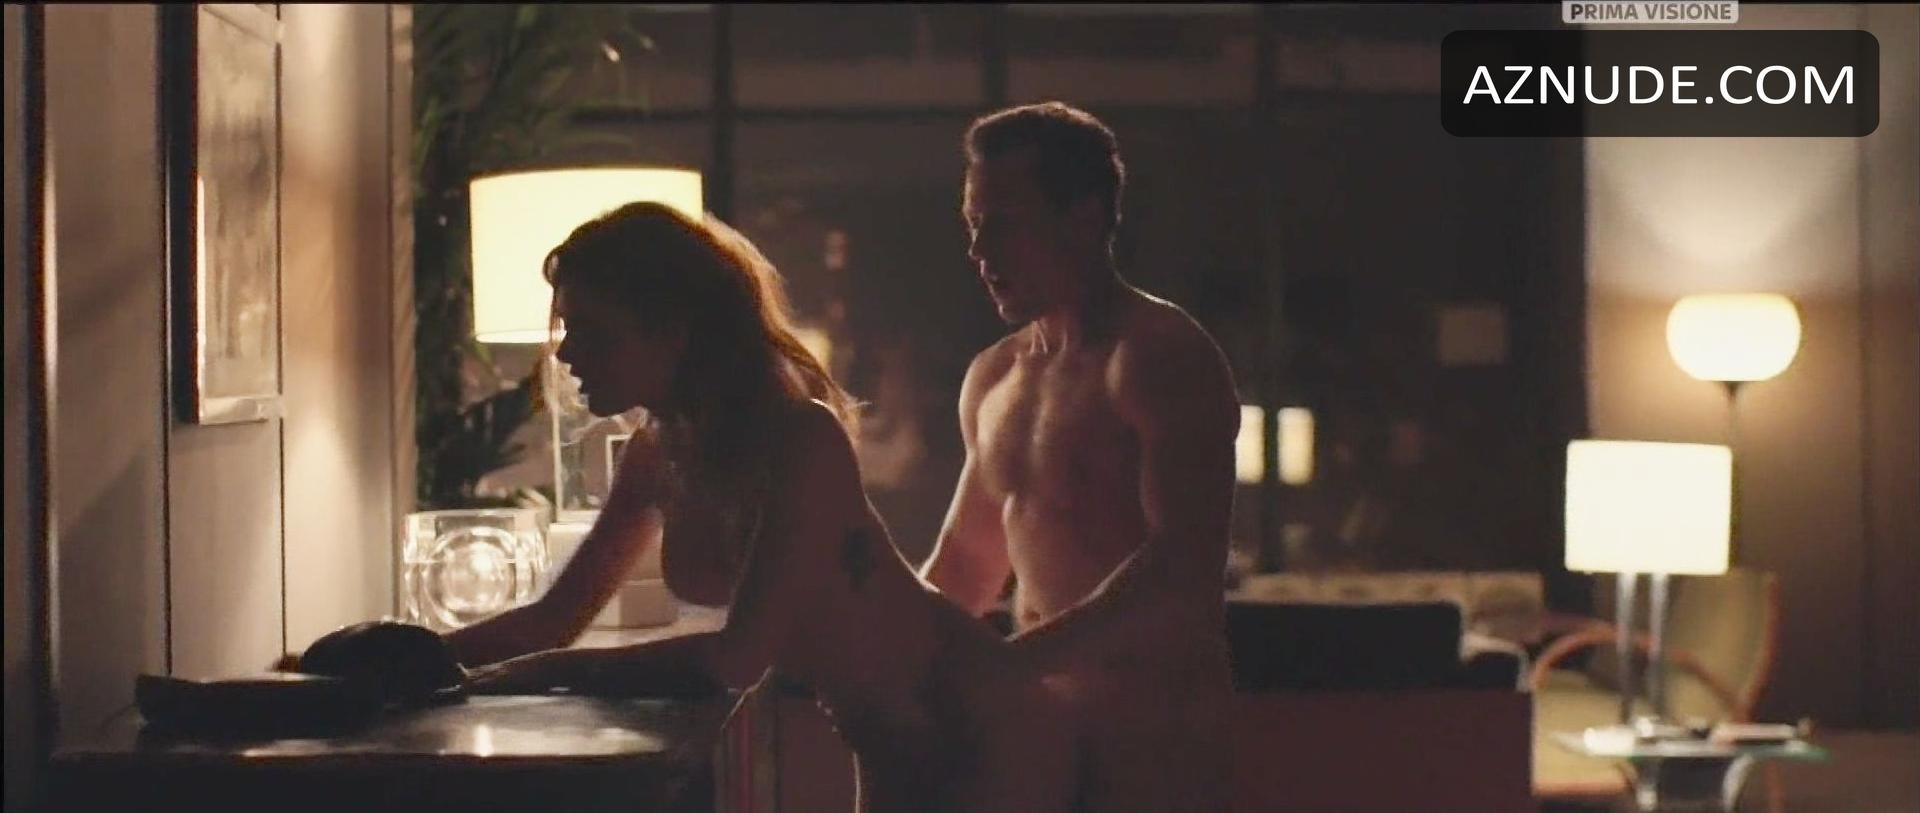 Katy perry vote video naked-2429